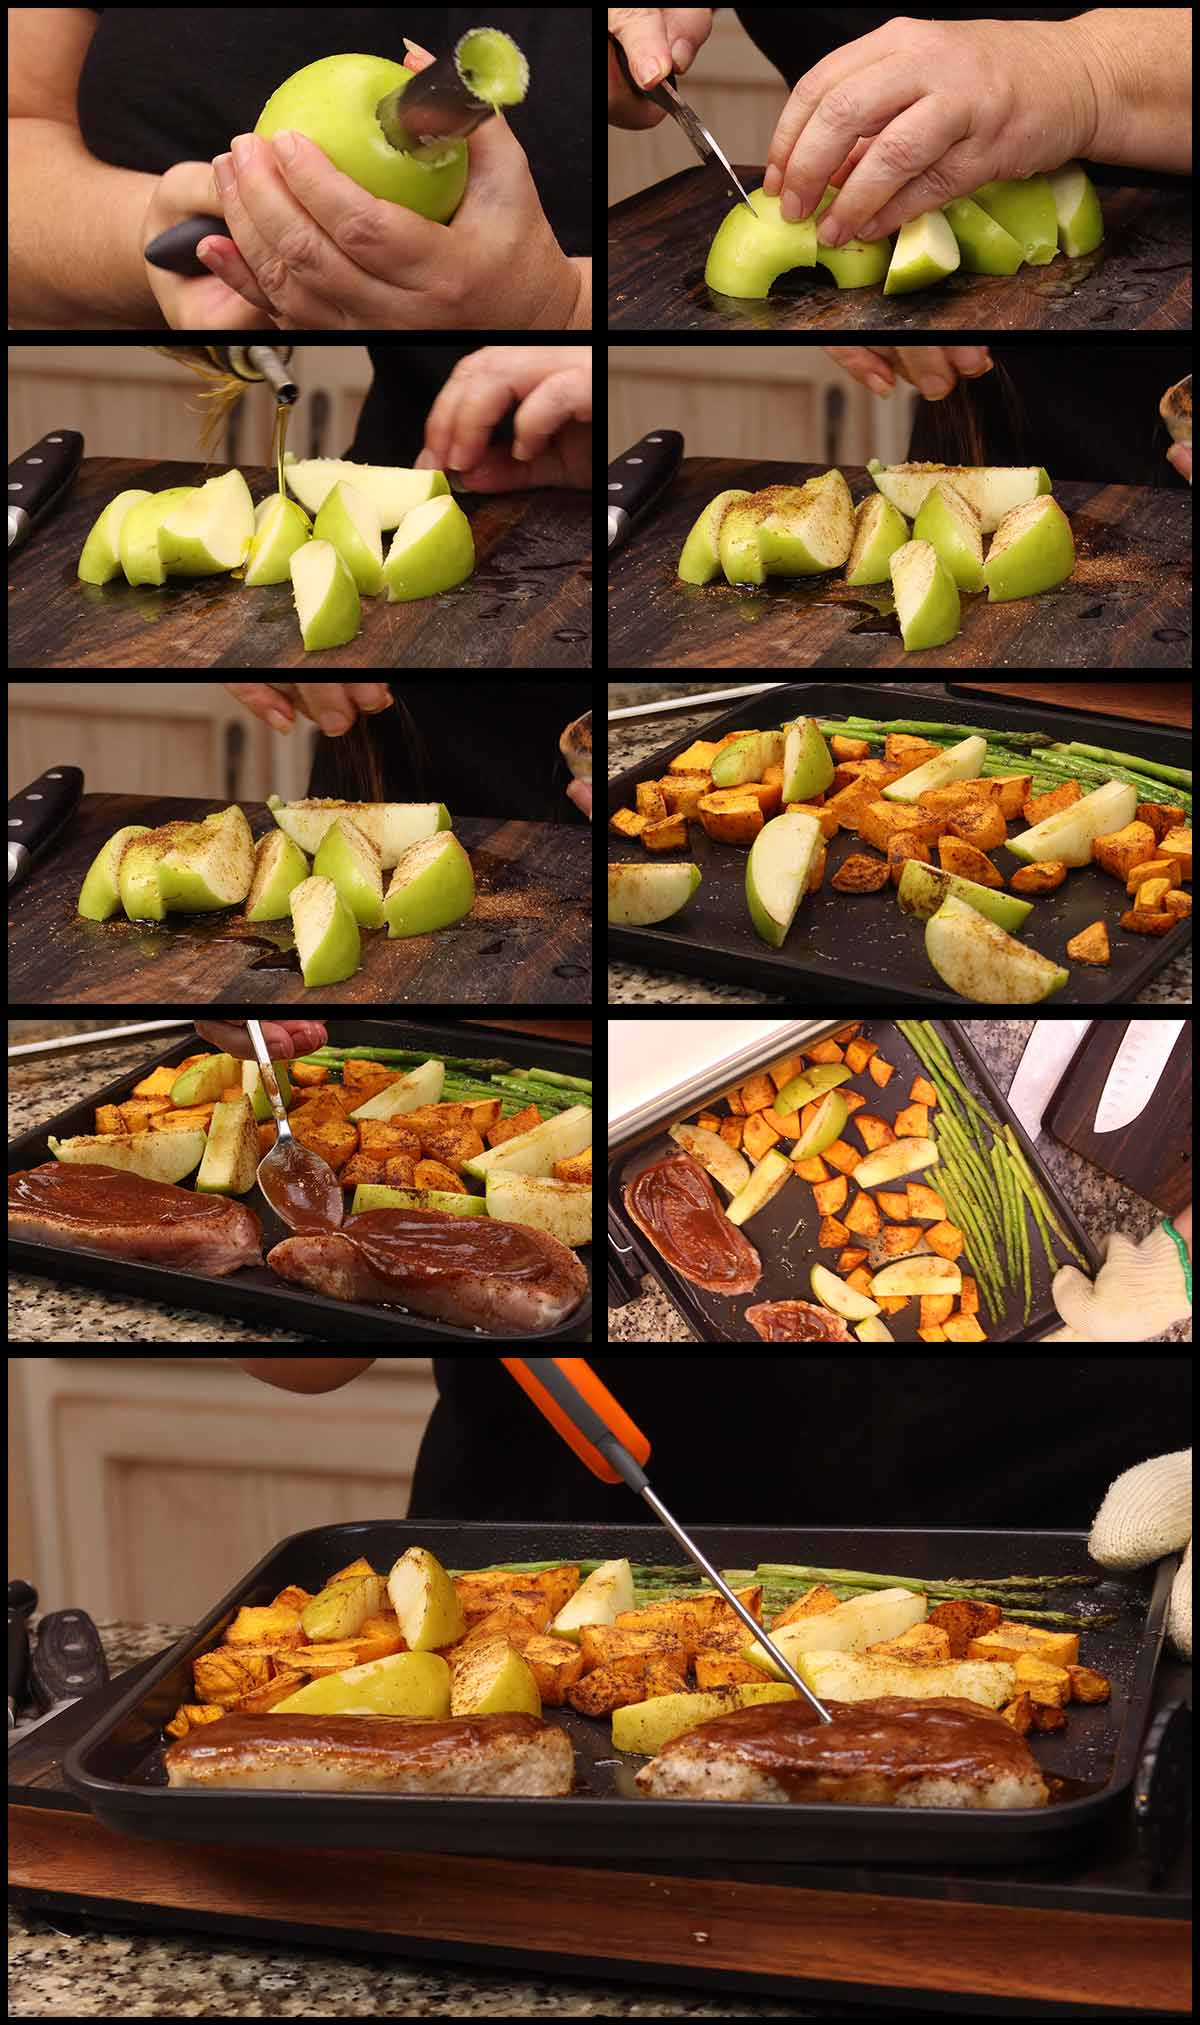 adding the apples and seasoned pork to the tray